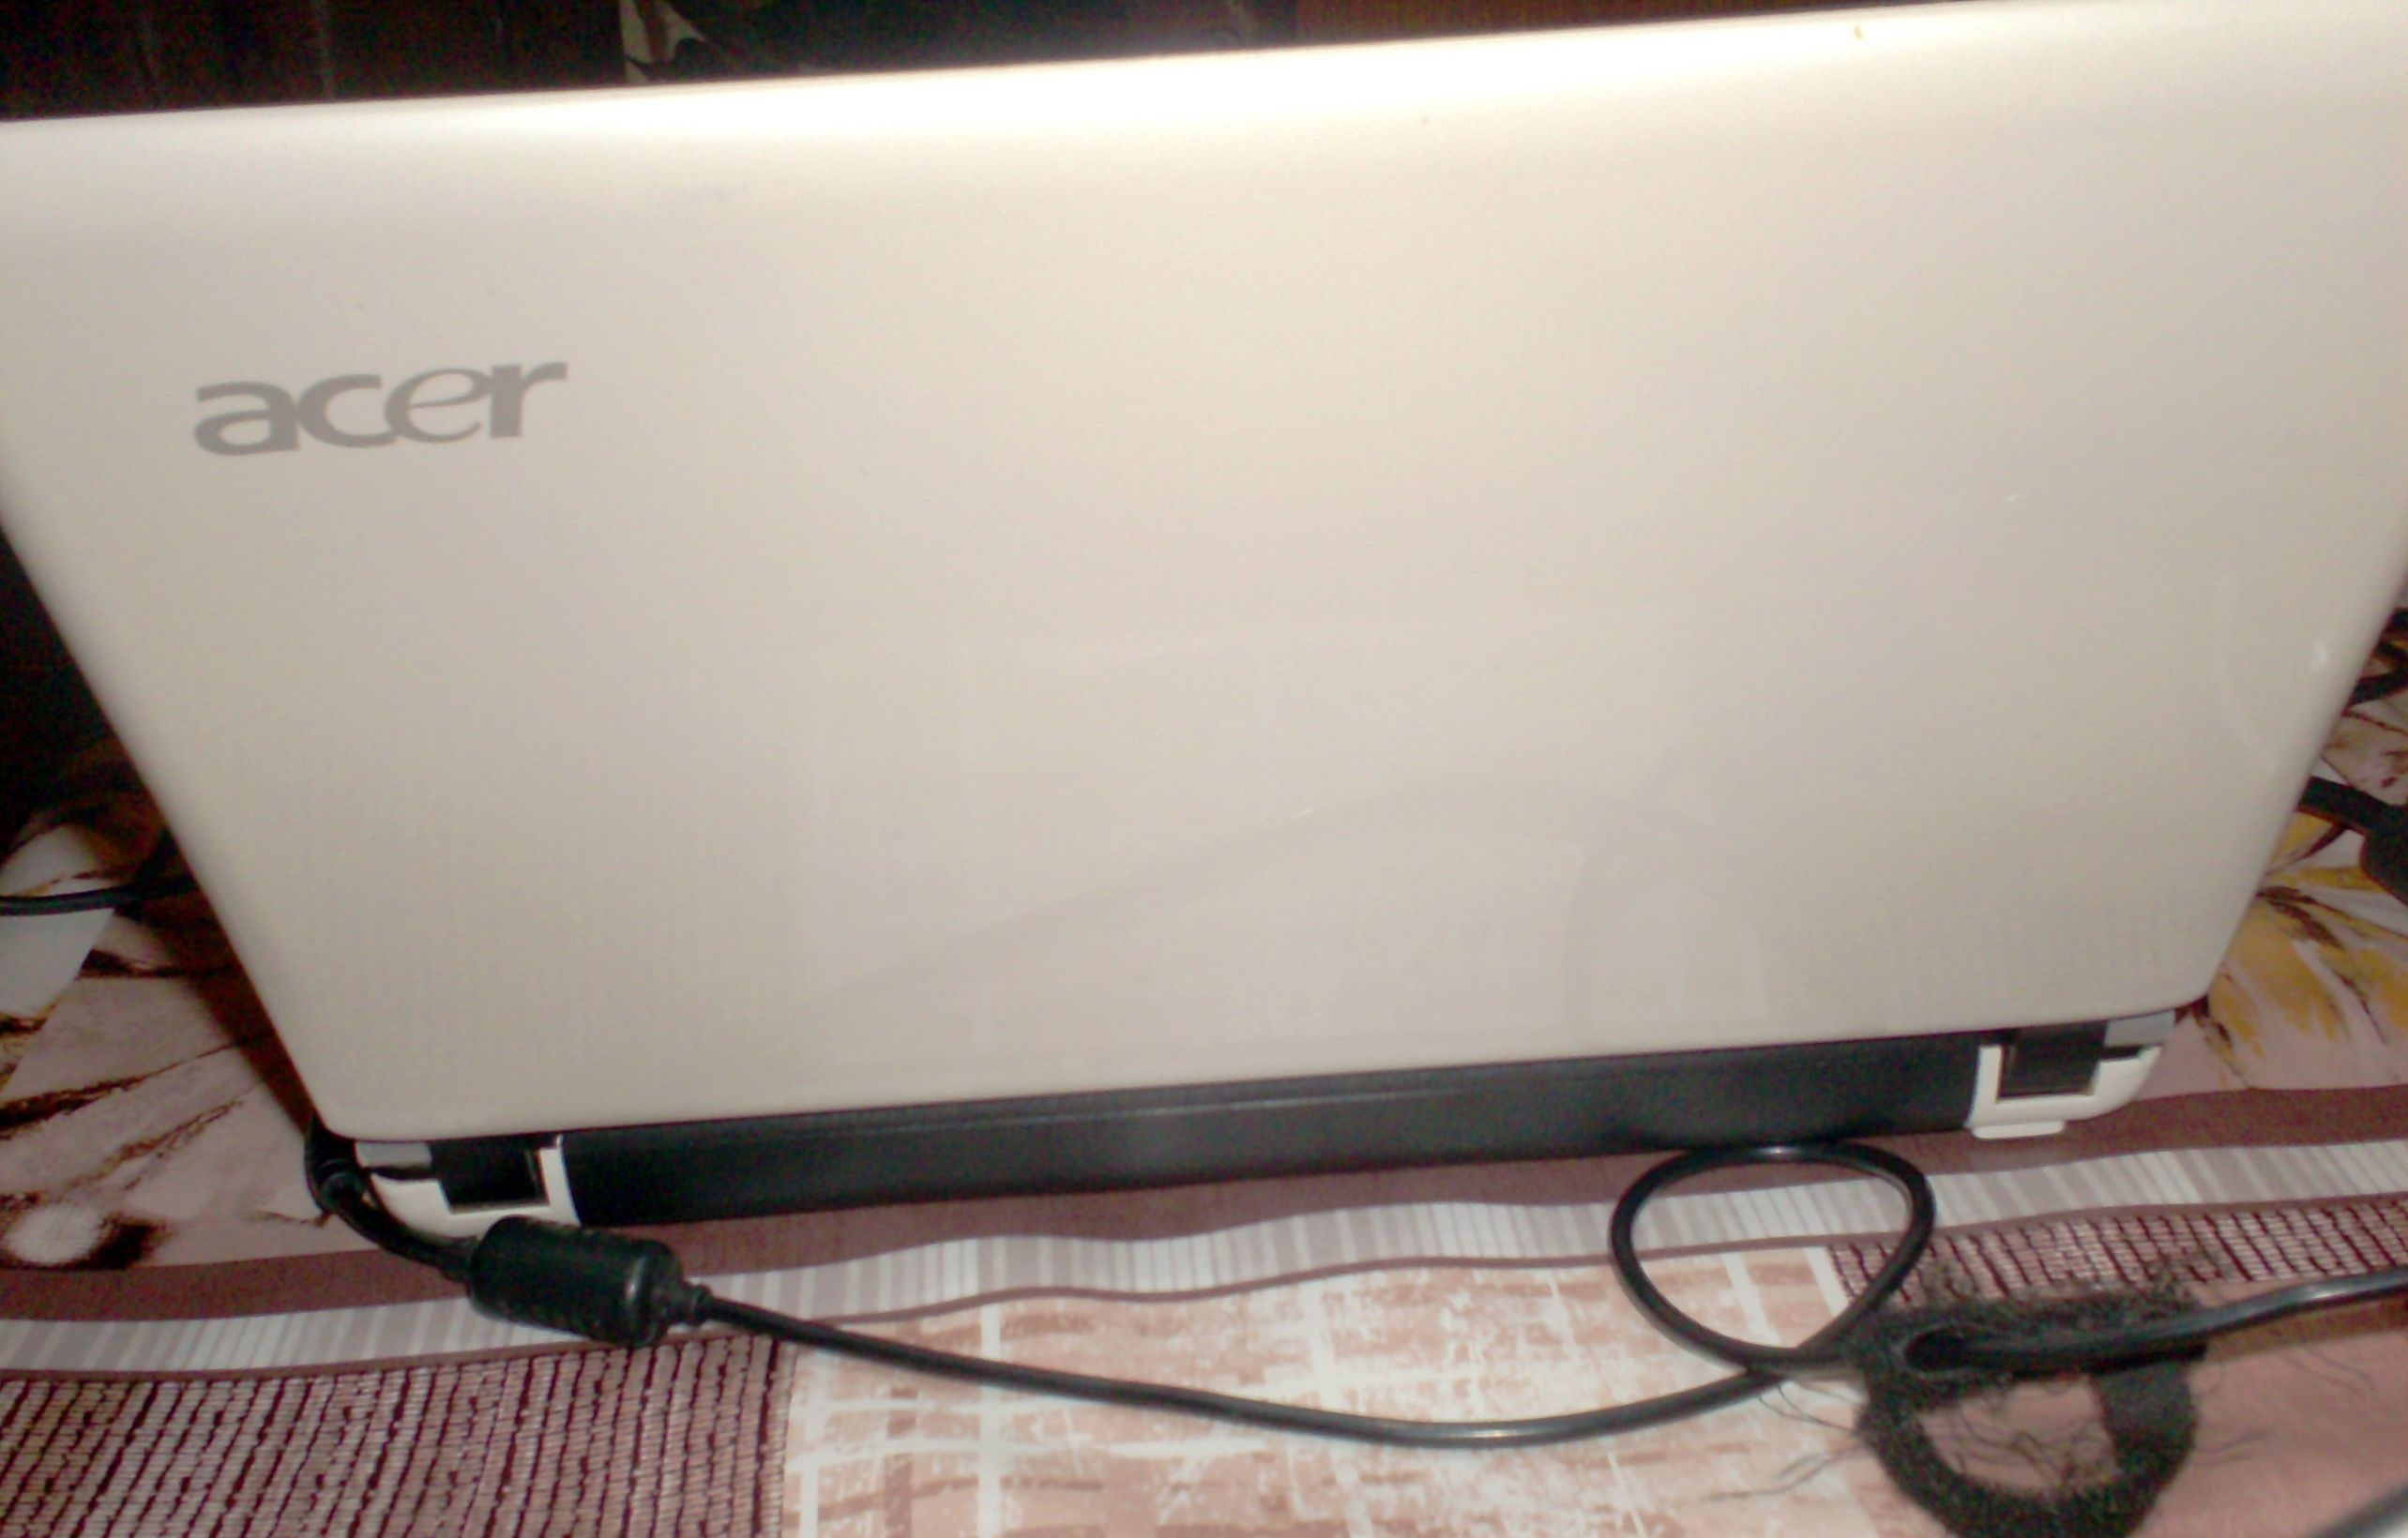 Netbook mini PC Acer Aspire One